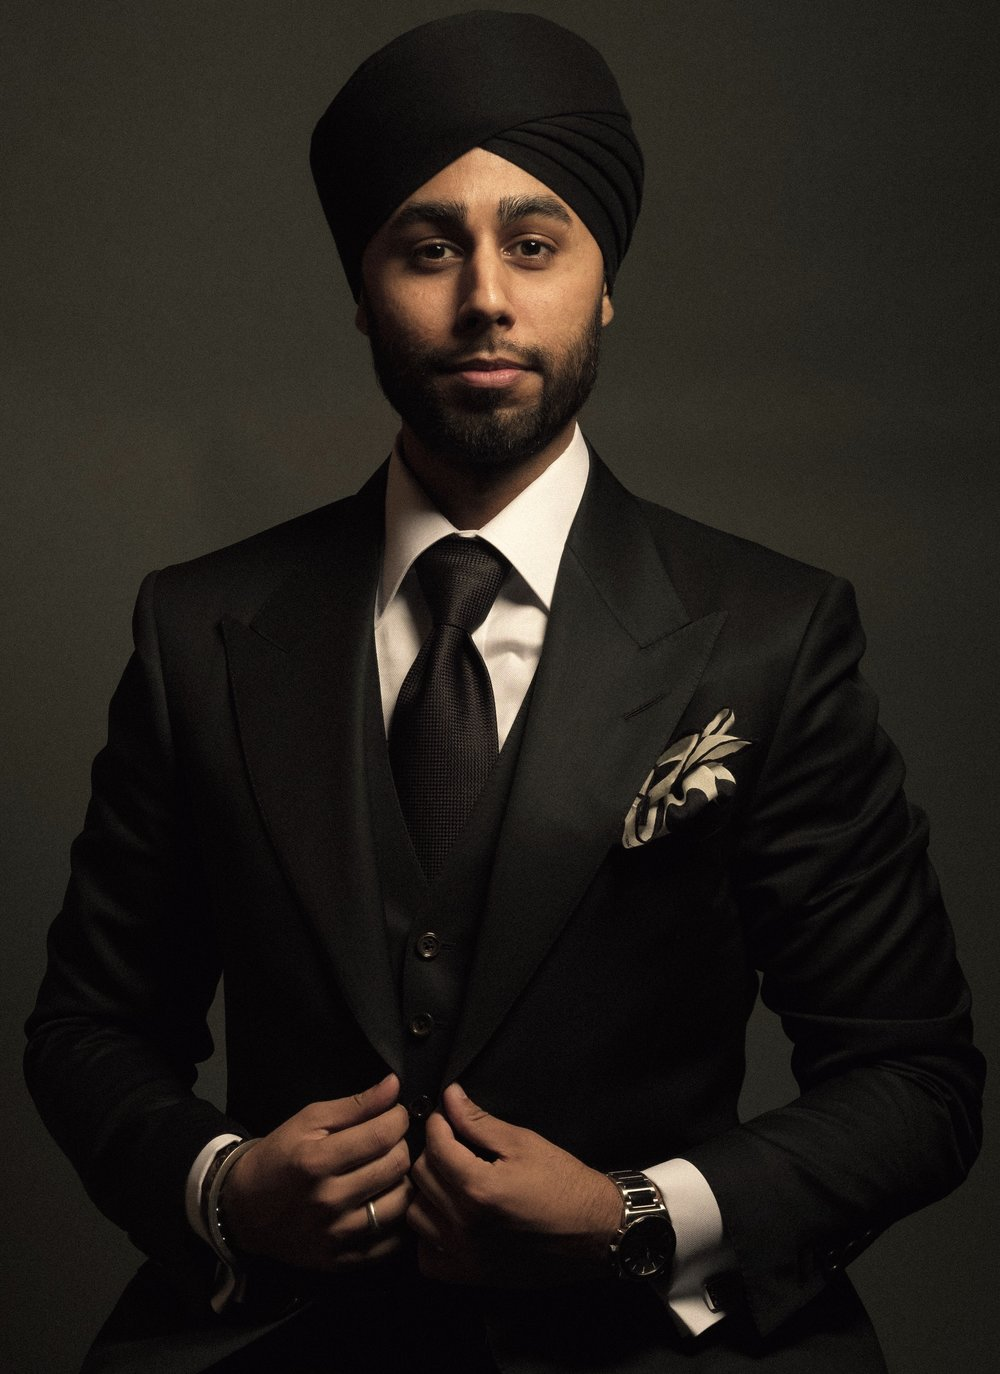 GAGAN SINGH - Composer, Producer, and Multi-Instrumentalist